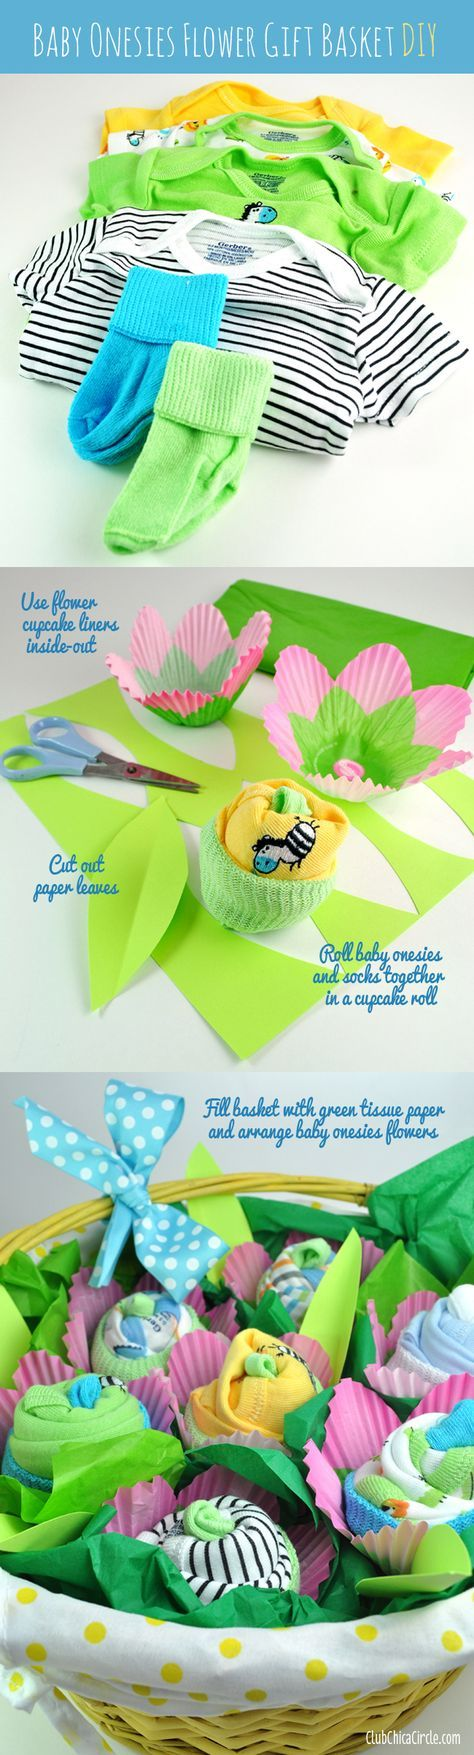 Get ready for the cutest ever DIY baby gift! Baby onesies flower basket tutorial www.clubchicacircle.com #babygifts #craftideas